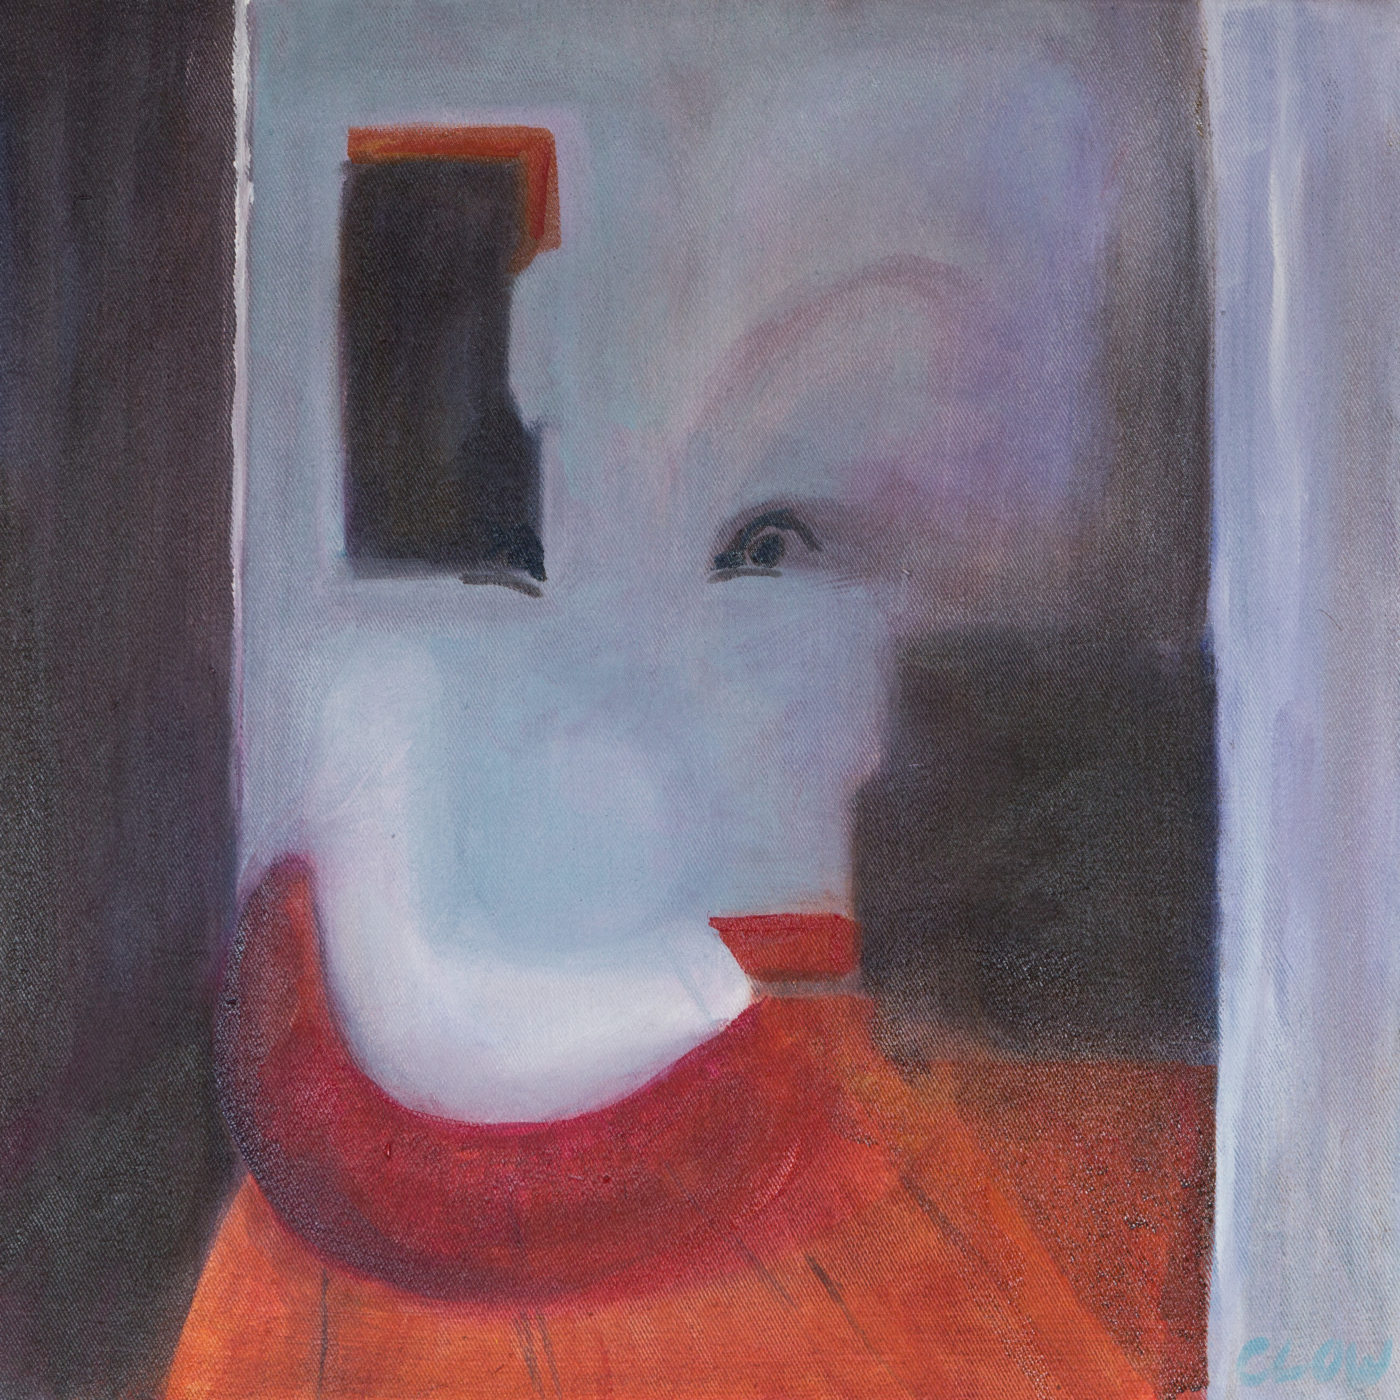 An abstract painting titled The Clown's Face.